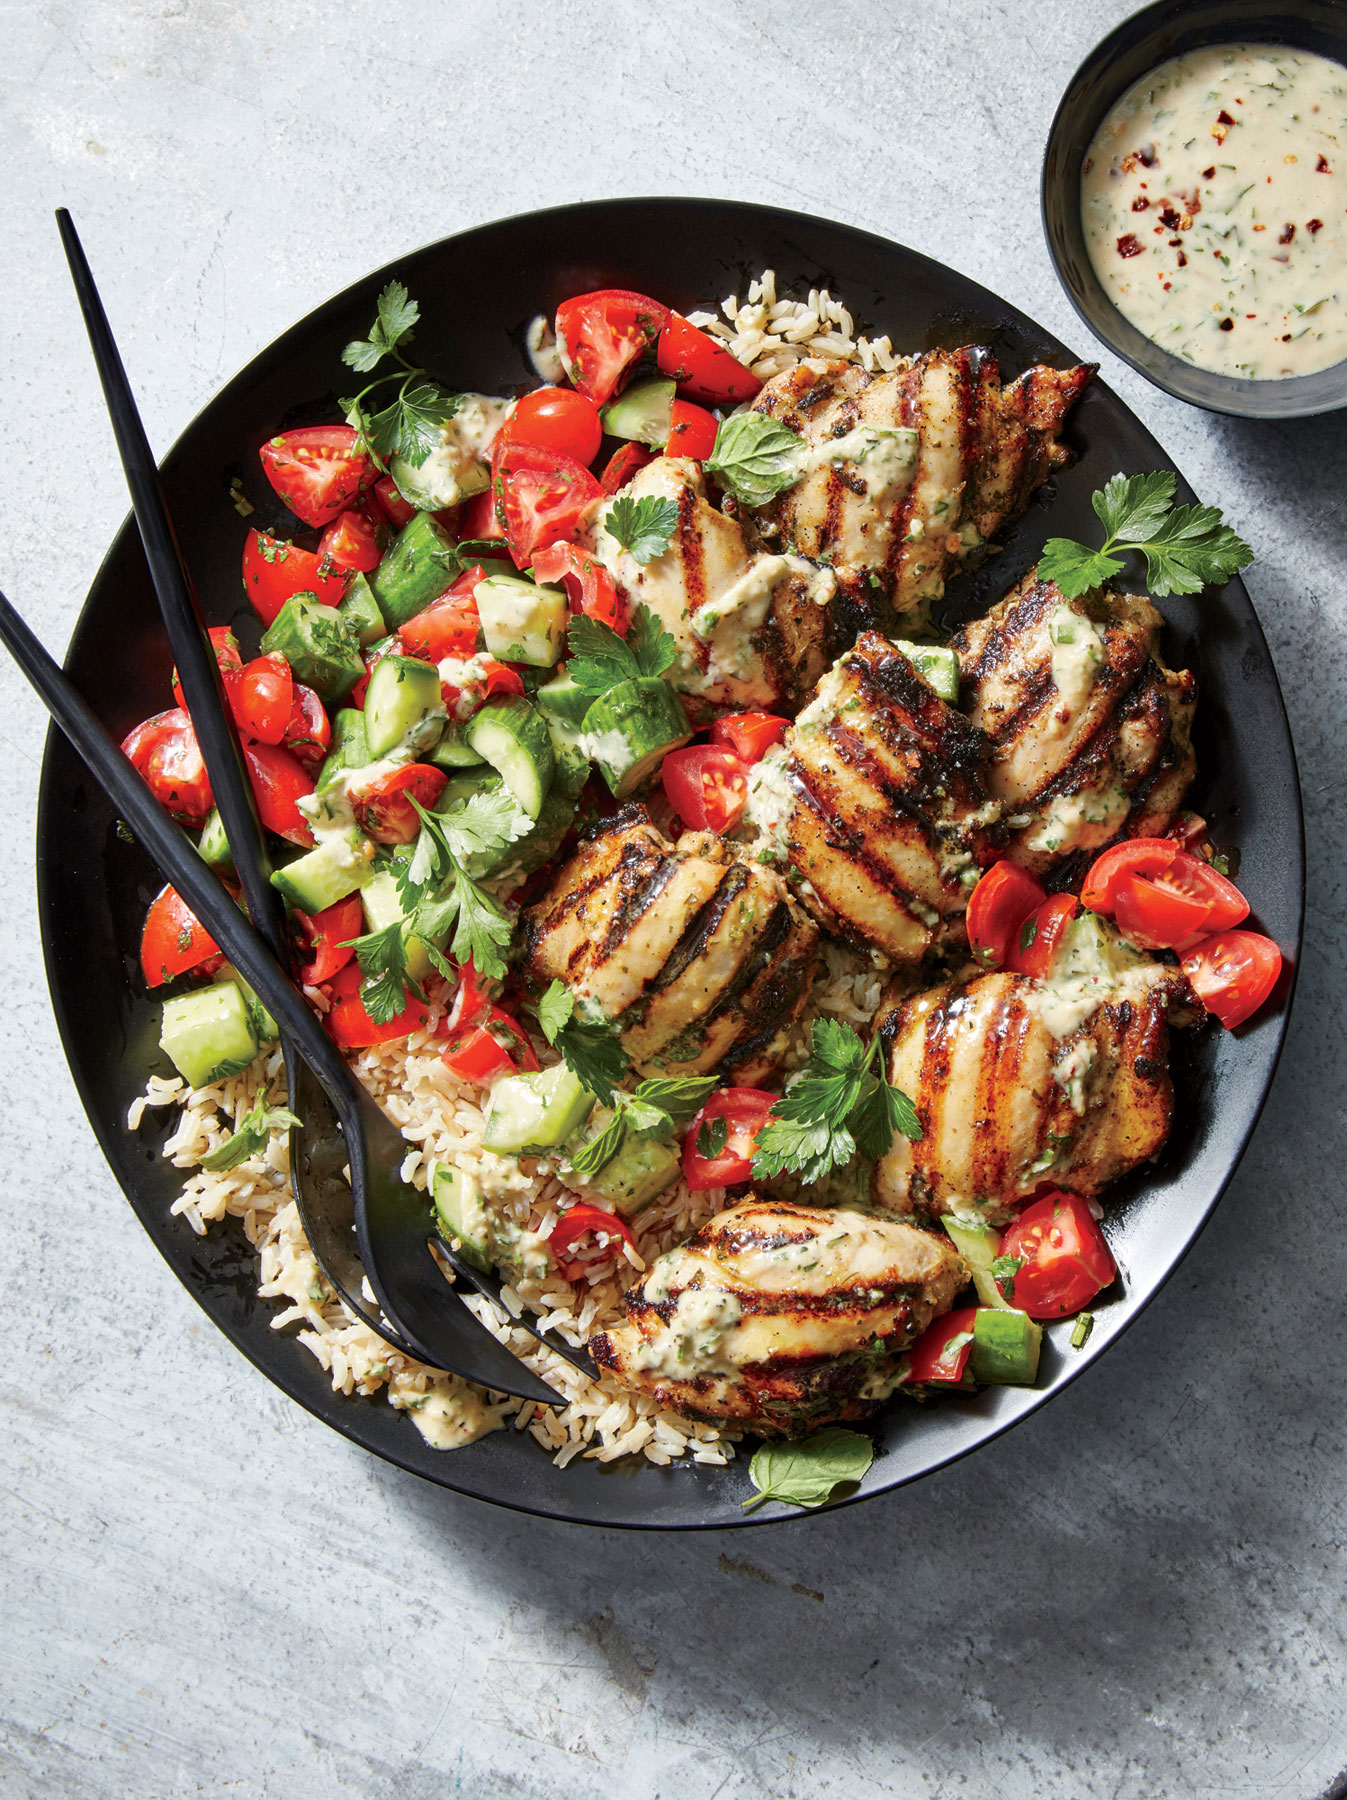 Tahini-Marinated Chicken Thighs with Cucumber-and-Tomato Salad